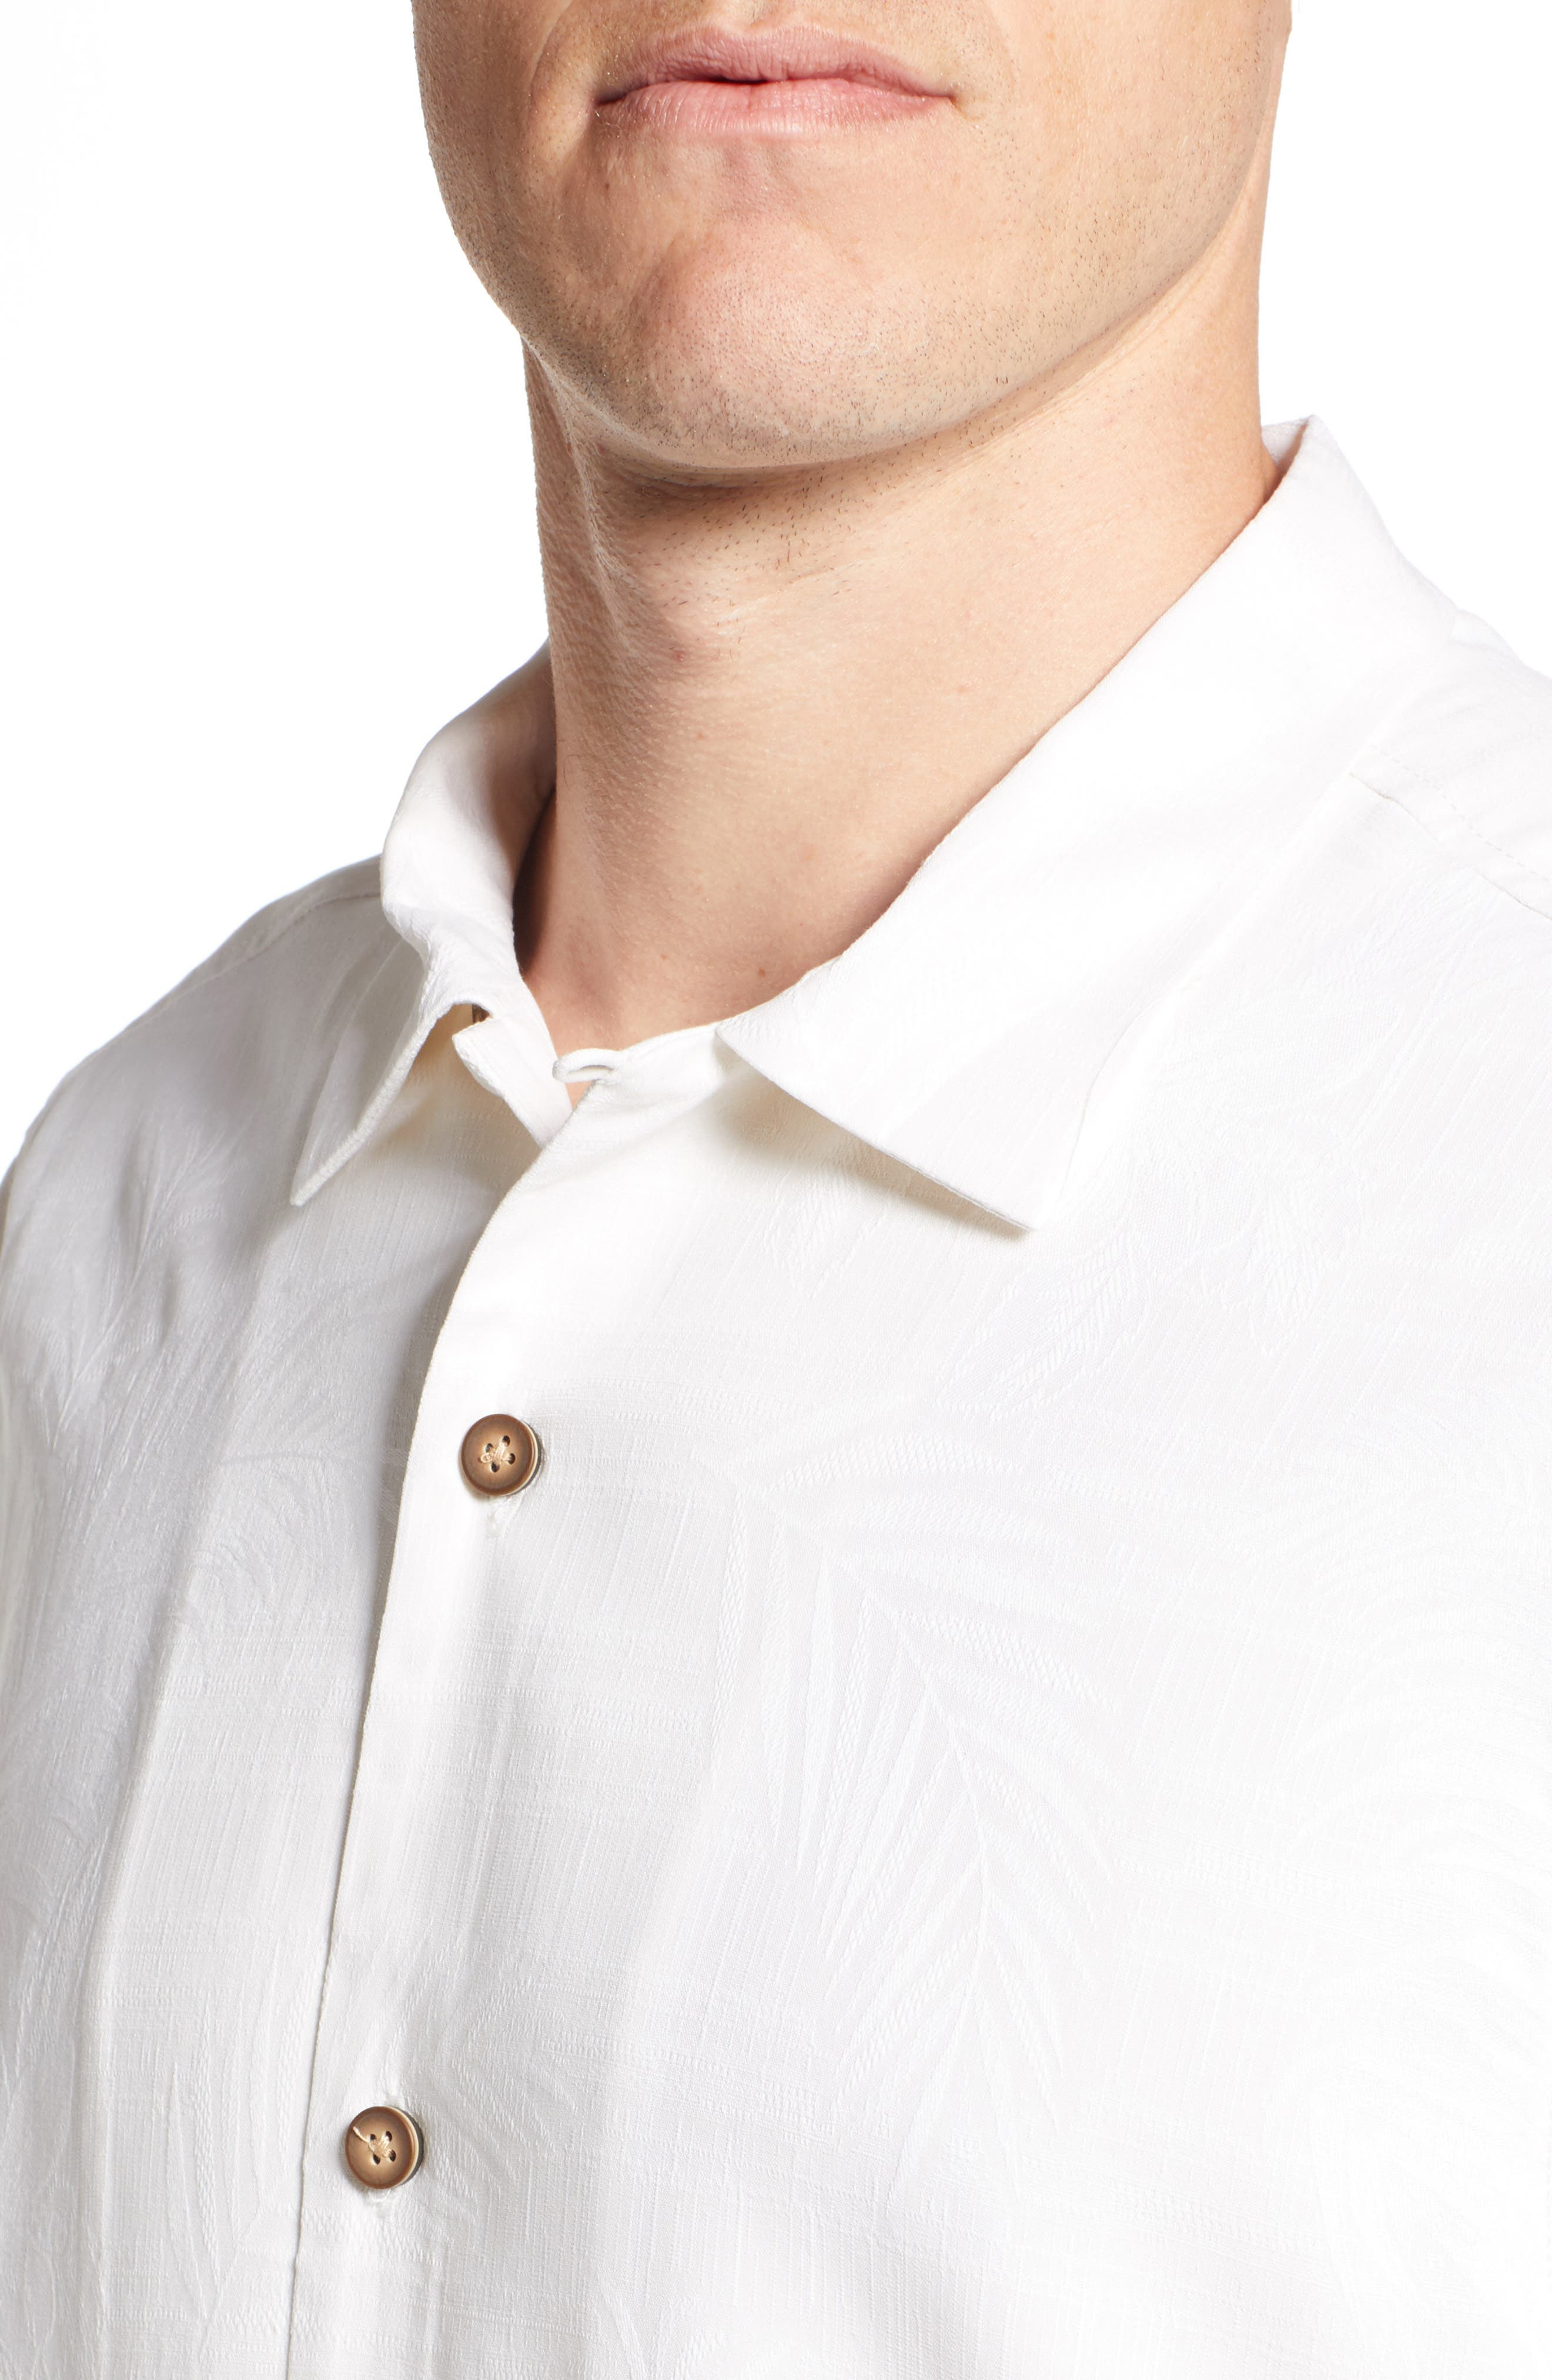 TOMMY BAHAMA,                             Tailgate Club Embroidered Silk Camp Shirt,                             Alternate thumbnail 4, color,                             100